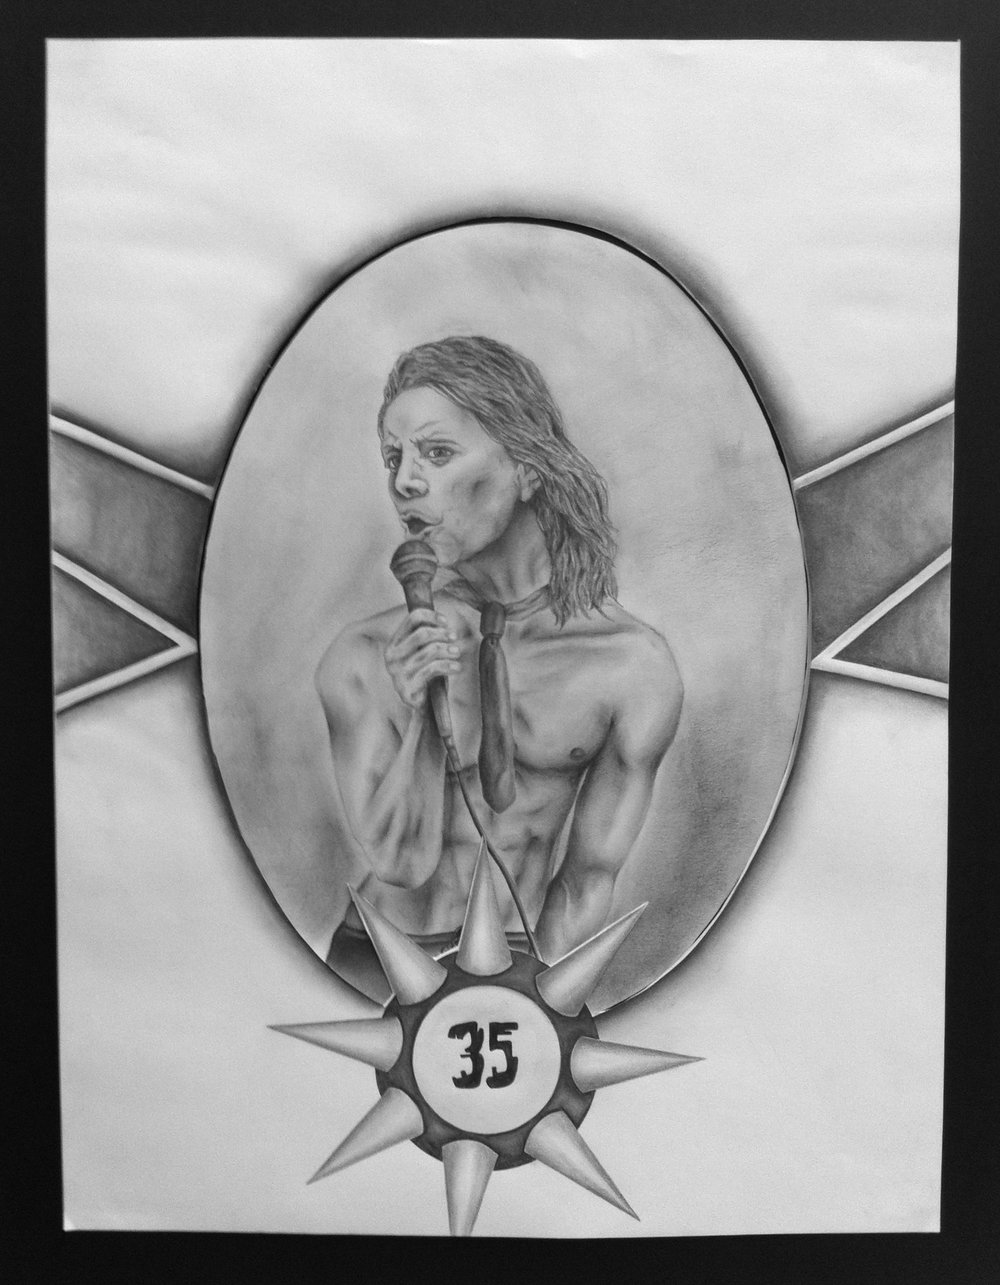 """35"", Conspiracy Theory Project - John F. Kennedy as Iggy Pop, Pencil on Paper, 2013"